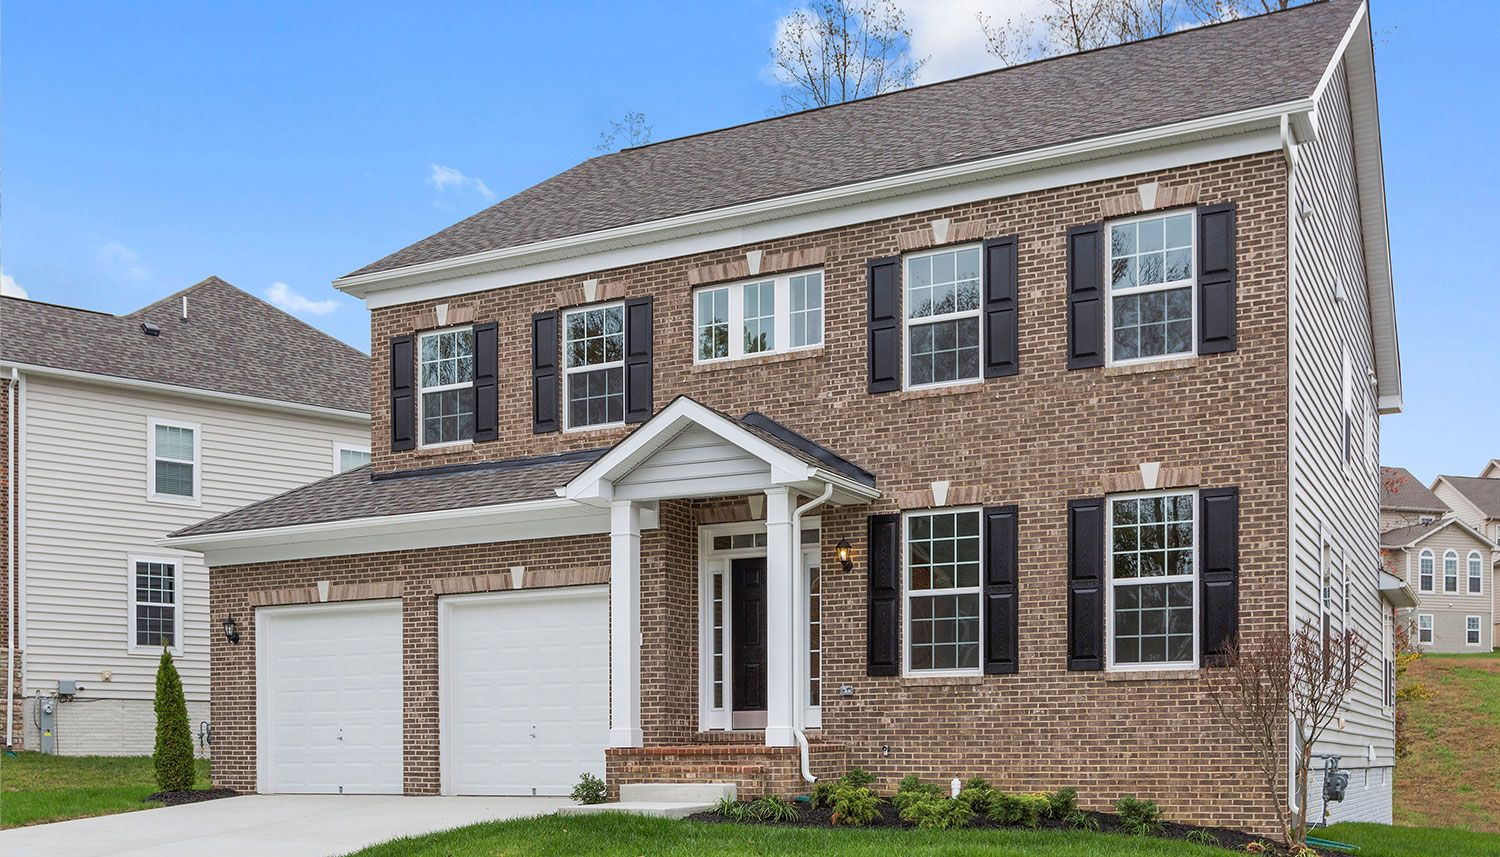 Real Estate at 2900 Winterbourne Drive, Upper Marlboro in Prince Georges County, MD 20774